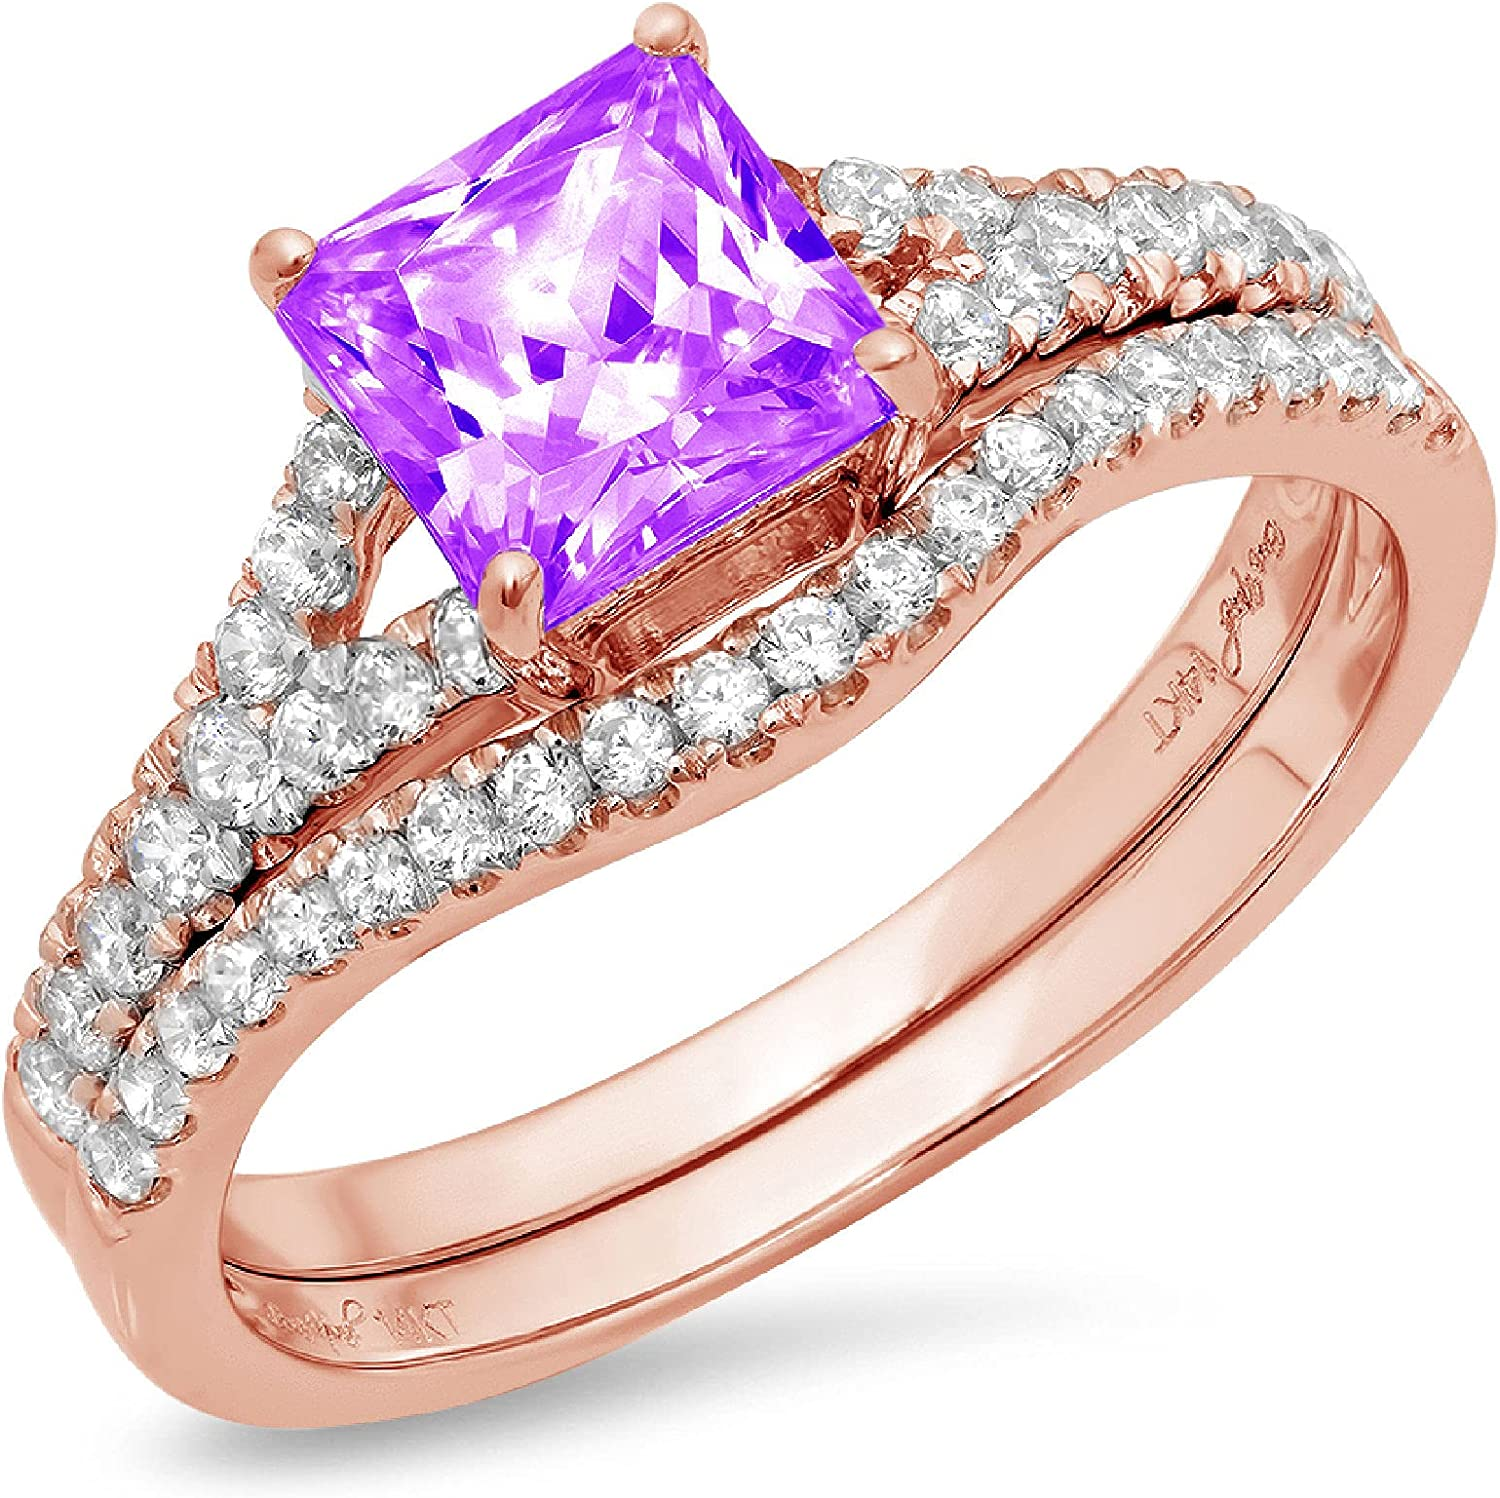 2.01ct Princess Cut Pave Solitaire Accent Natural Purple Amethyst Engagement Promise Statement Anniversary Bridal Wedding Ring Band set Curved Real Solid 14k Rose Gold